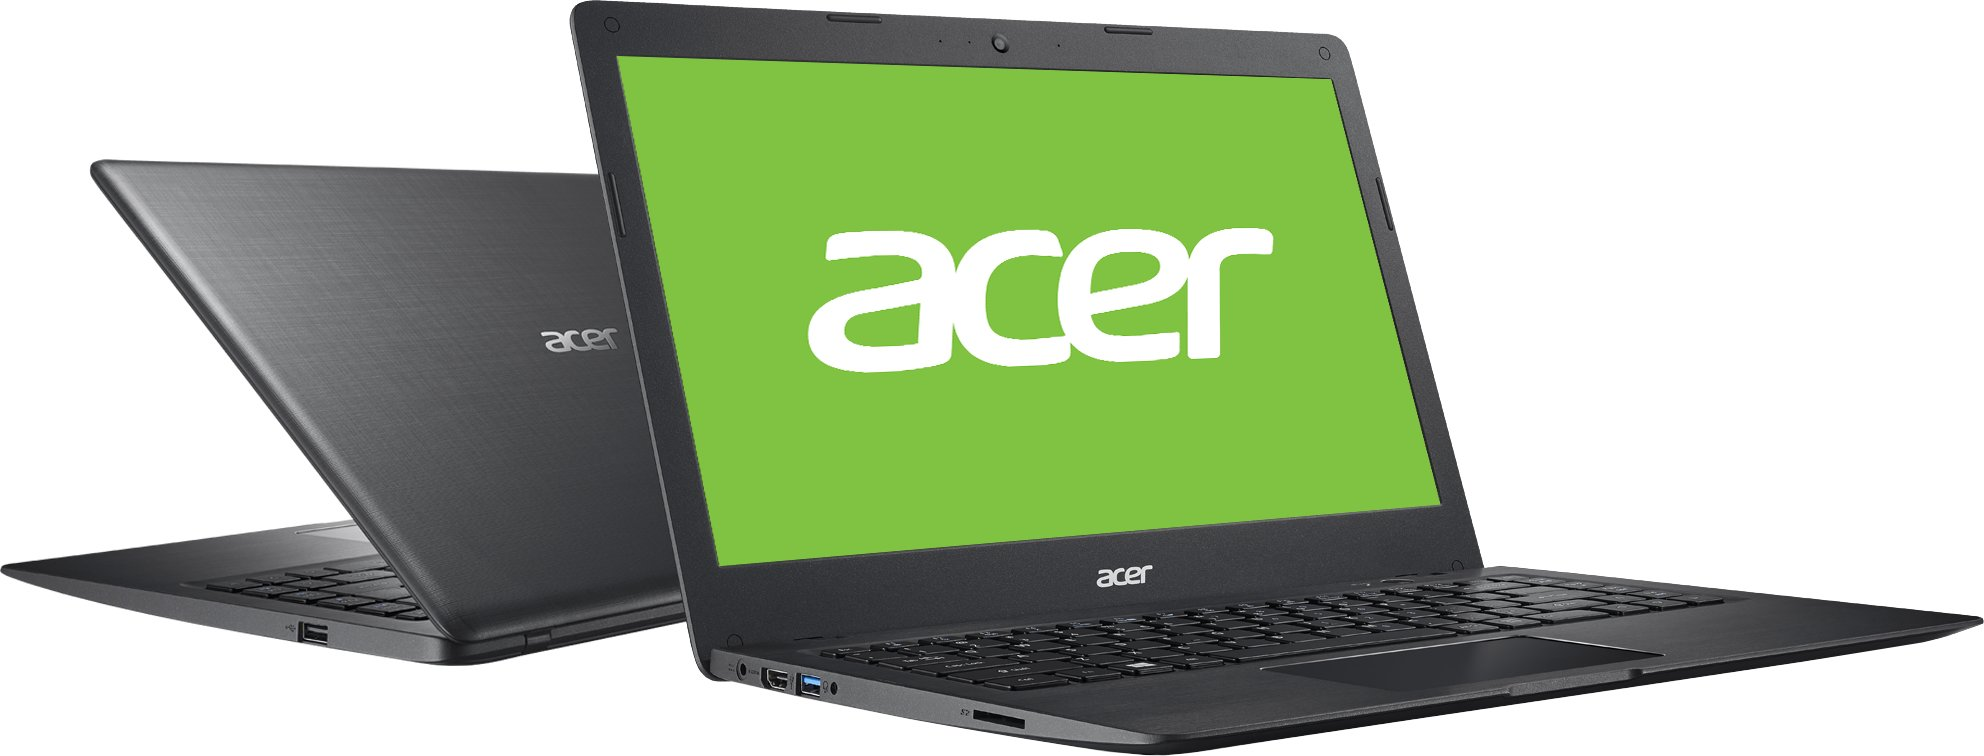 Acer Swift 1 SF114-31-P4WT